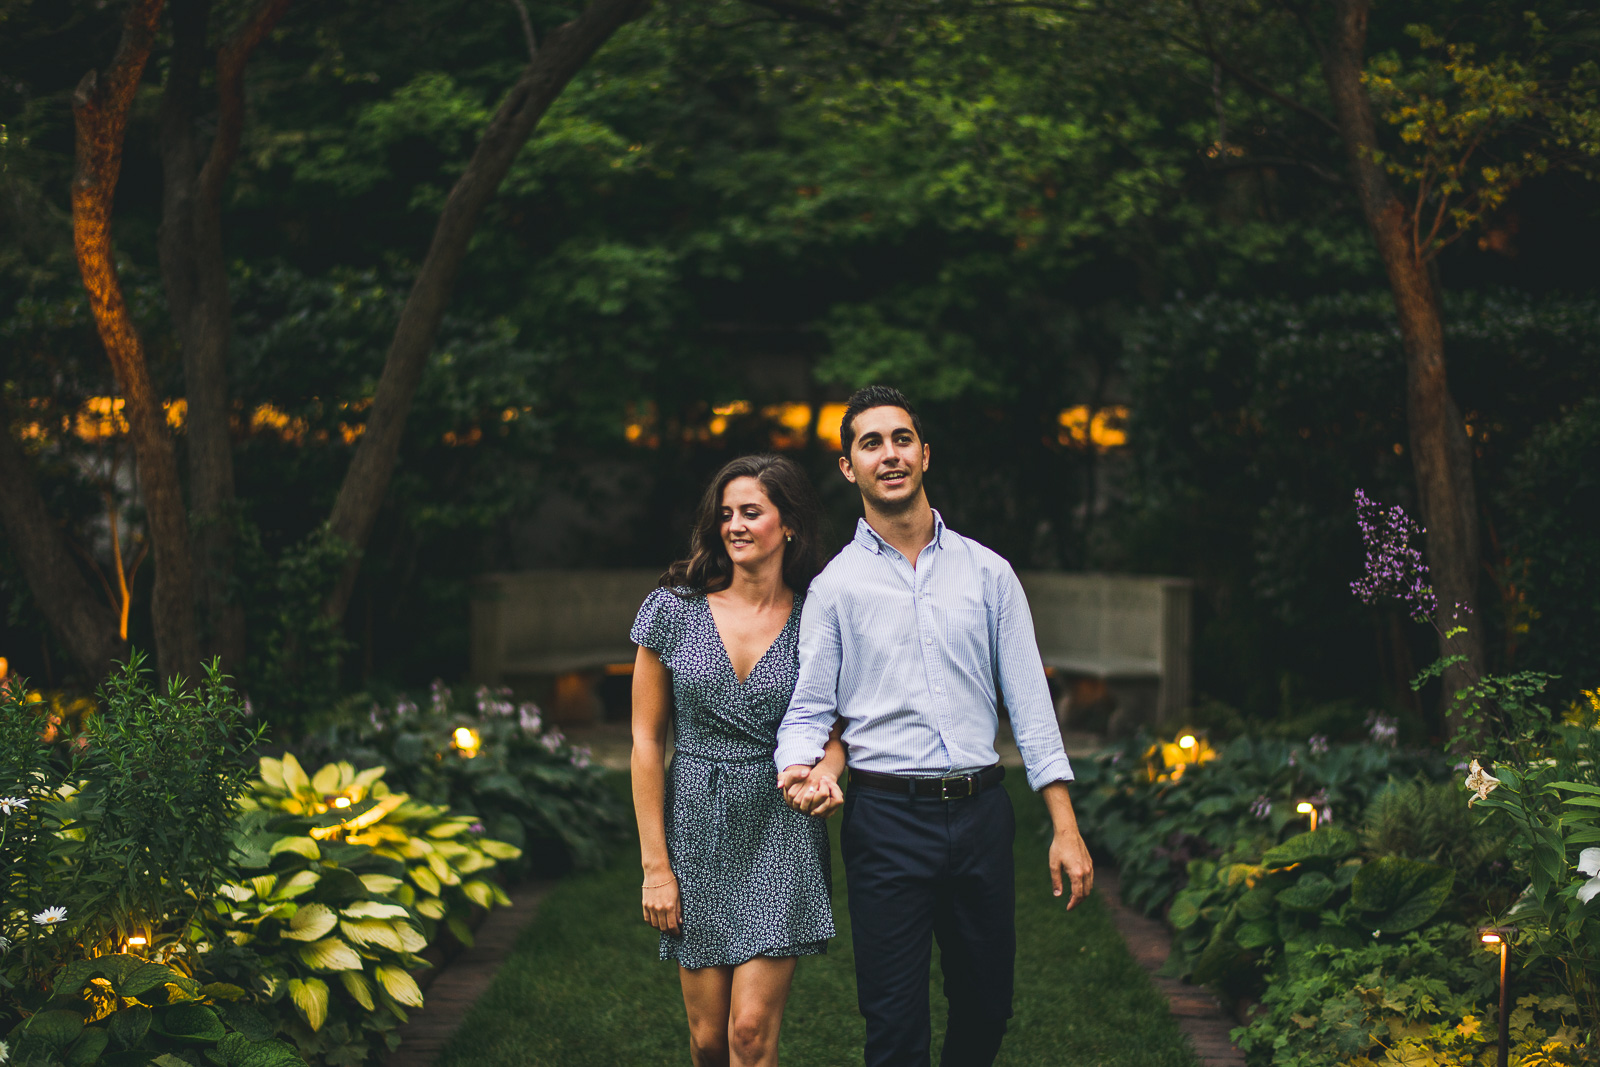 18 garden northwestern engagement pictures - Northwestern Engagement Photos // Emma + Francesco